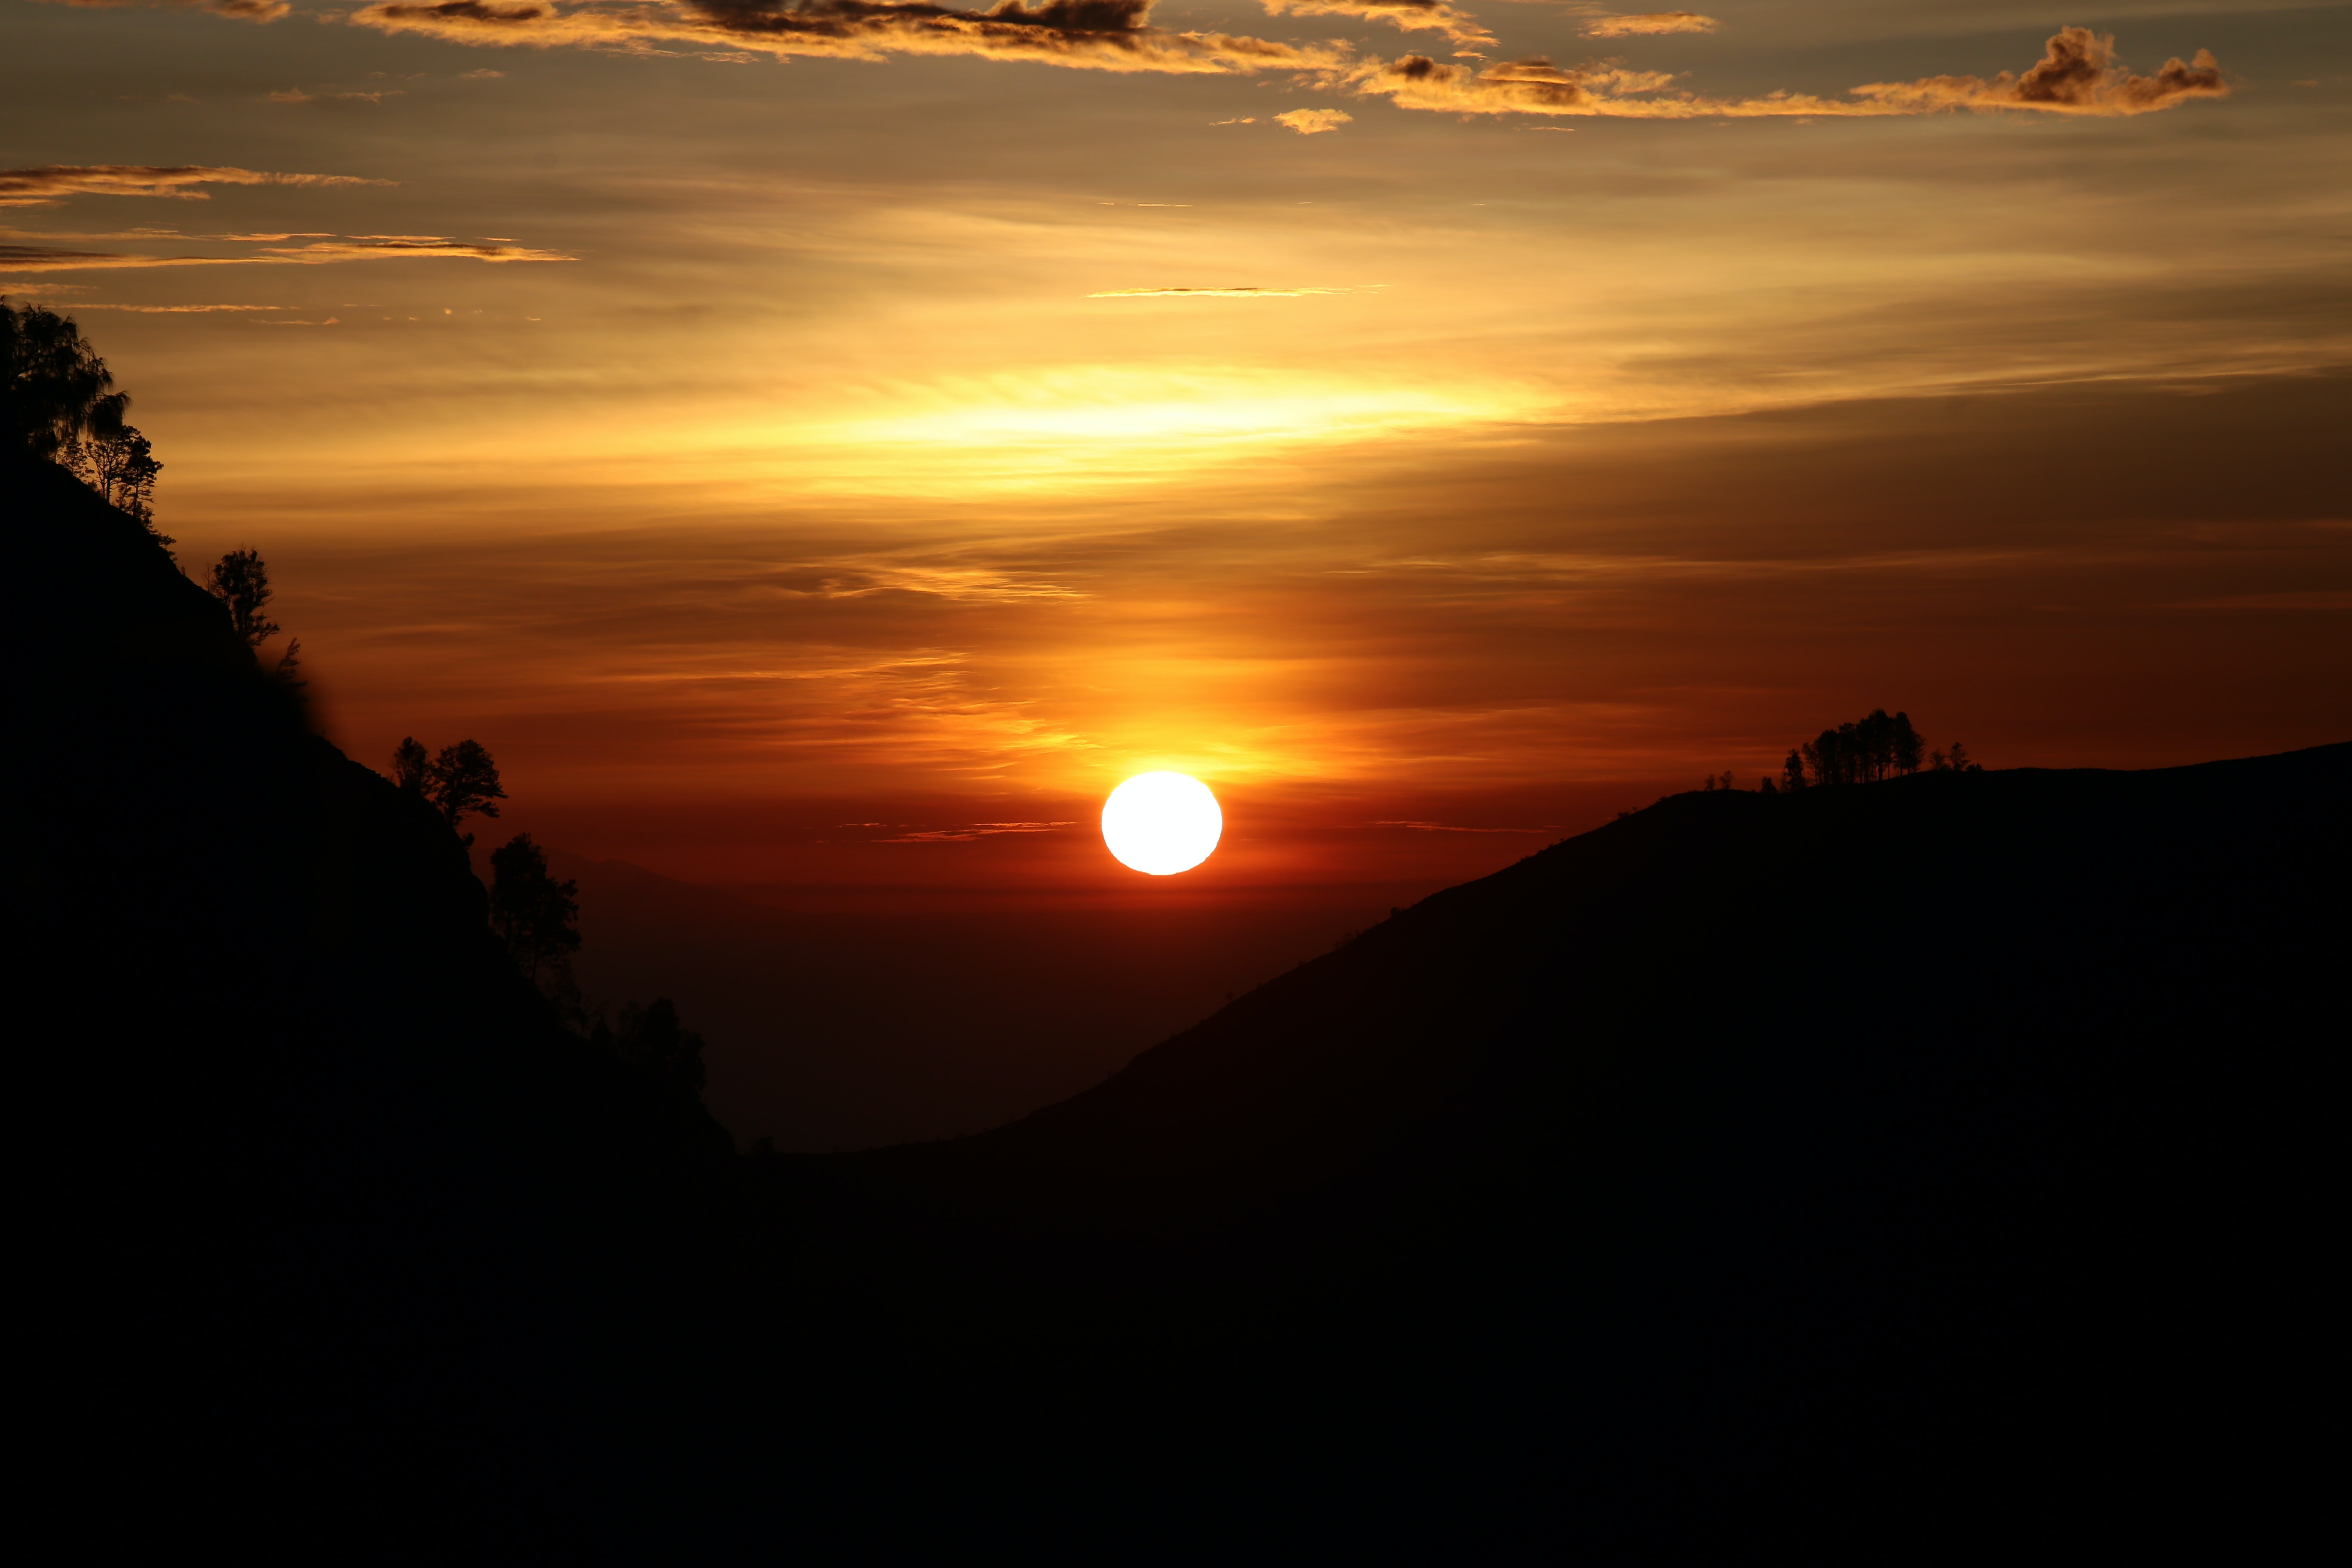 Sun setting over the silhouette of a steep valley